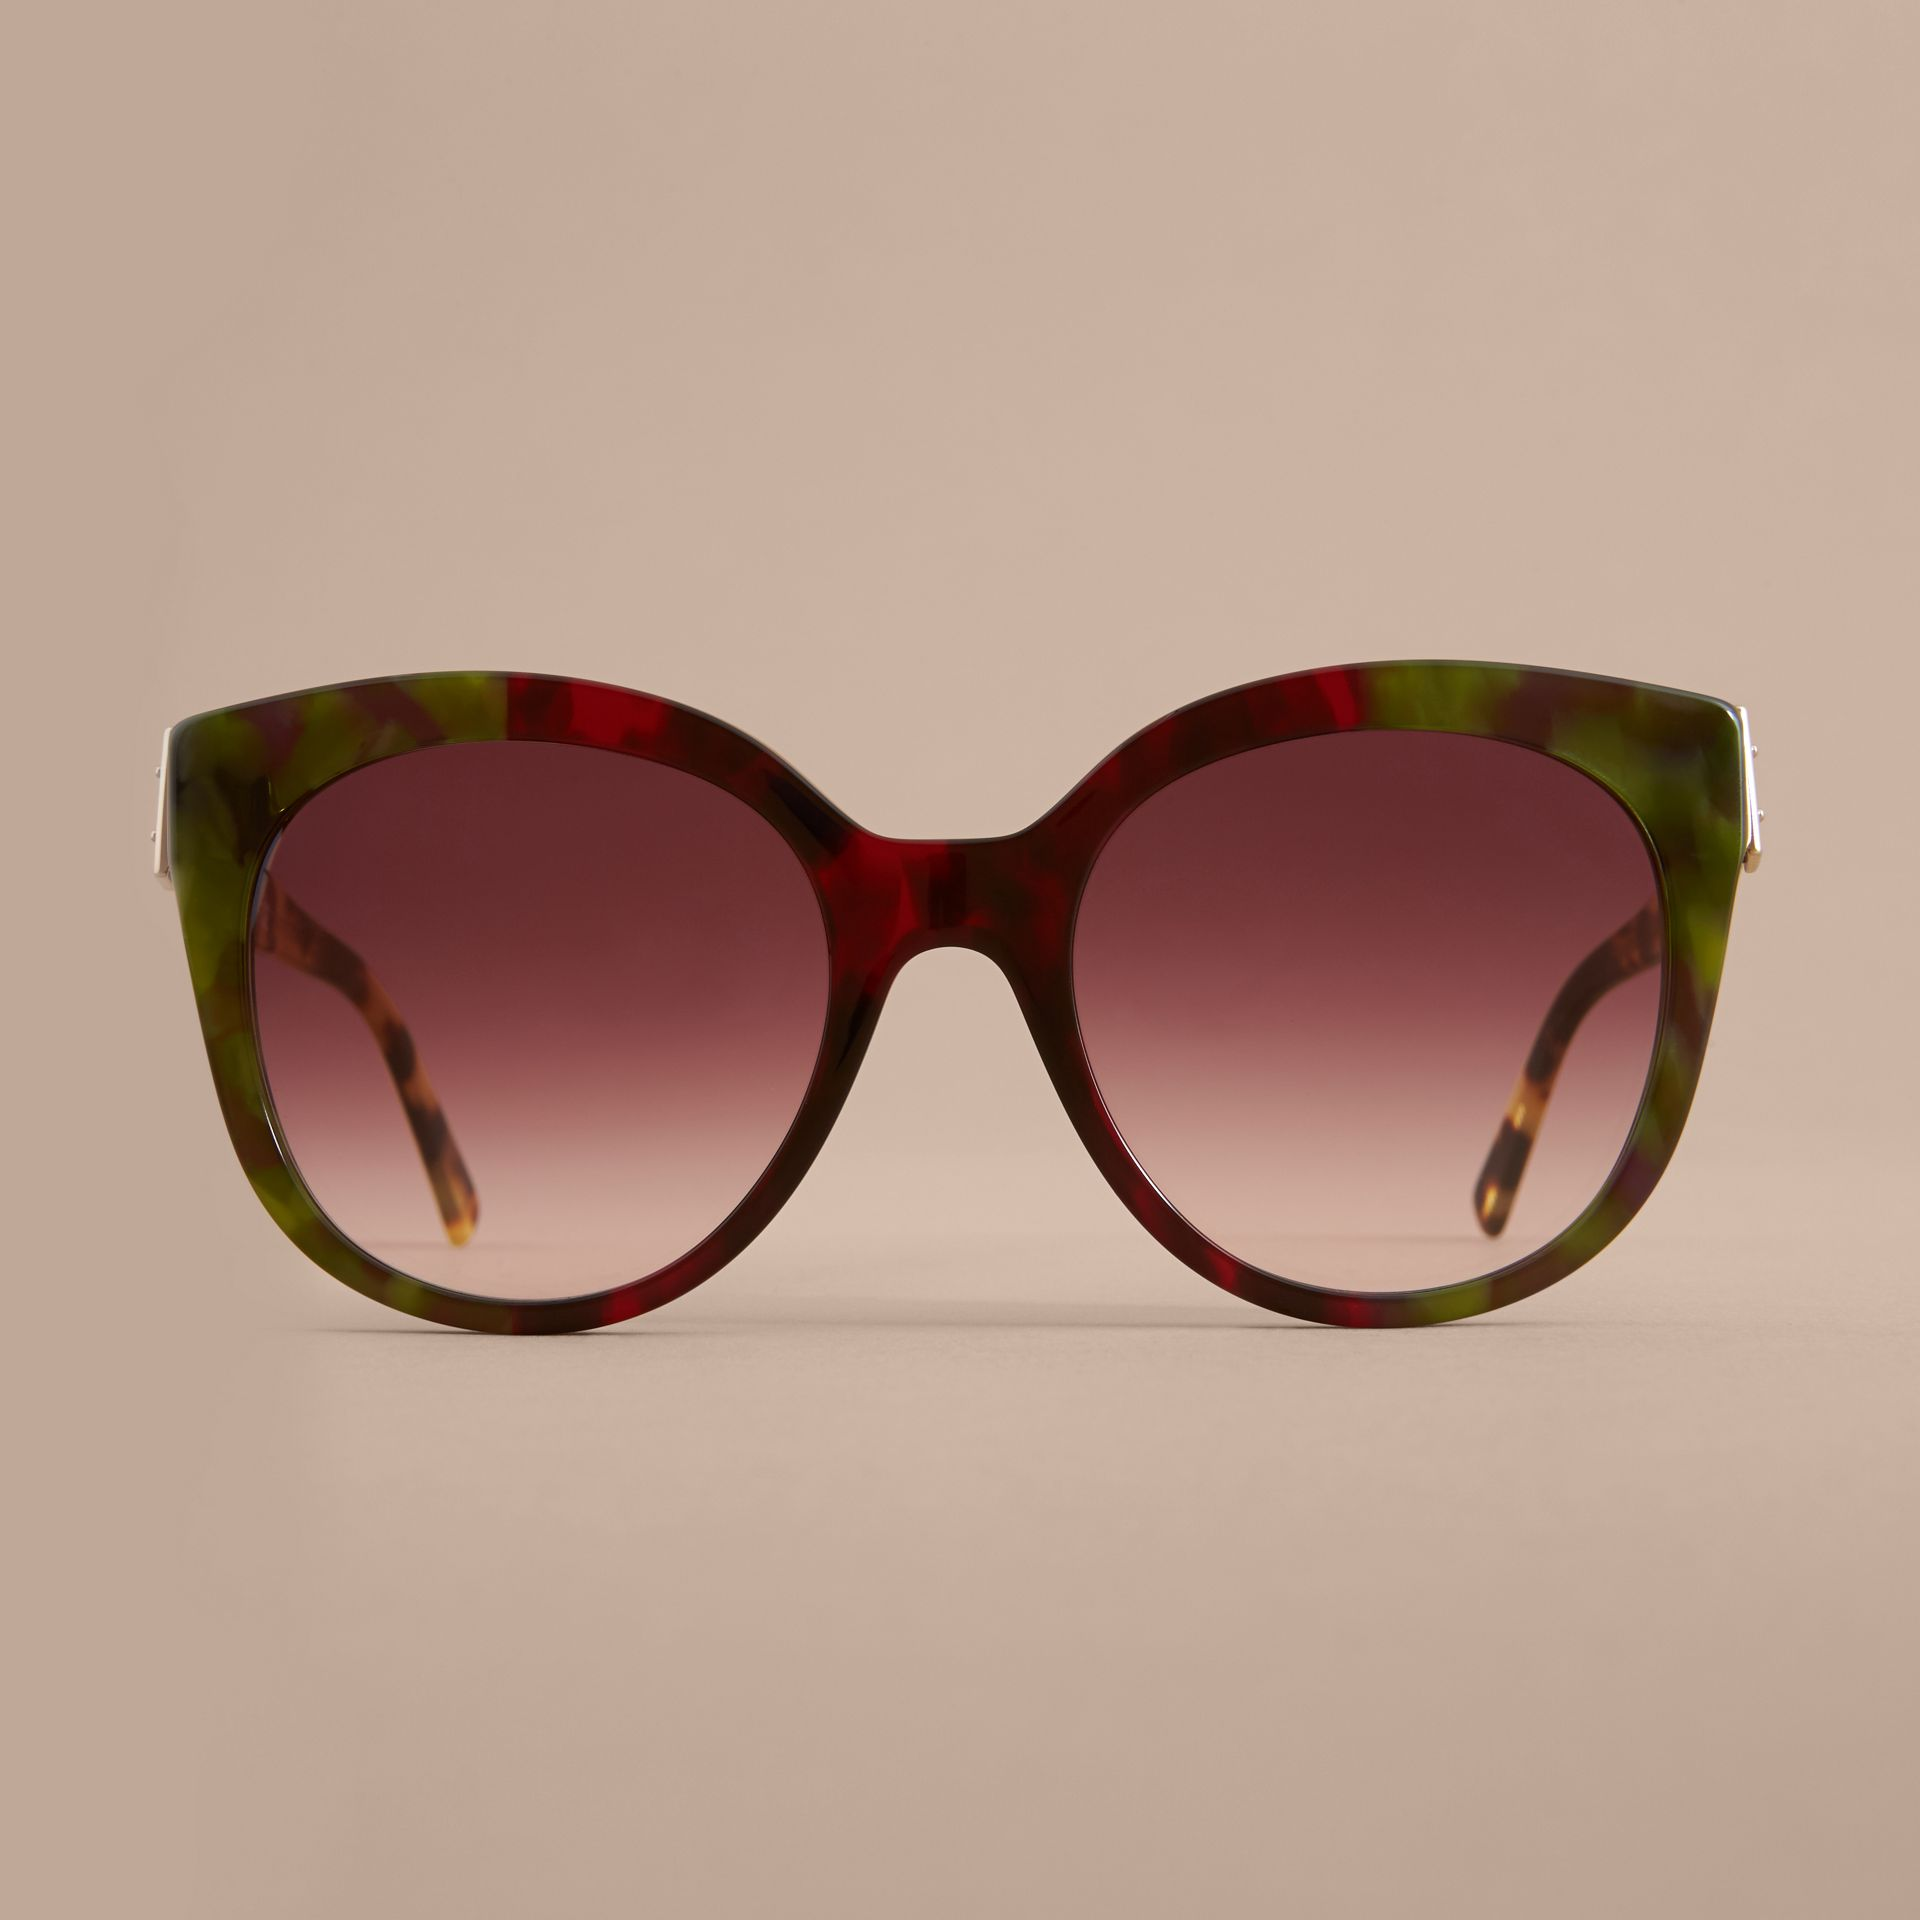 Buckle Detail Cat-eye Frame Sunglasses in Cardinal Red - Women | Burberry Australia - gallery image 3